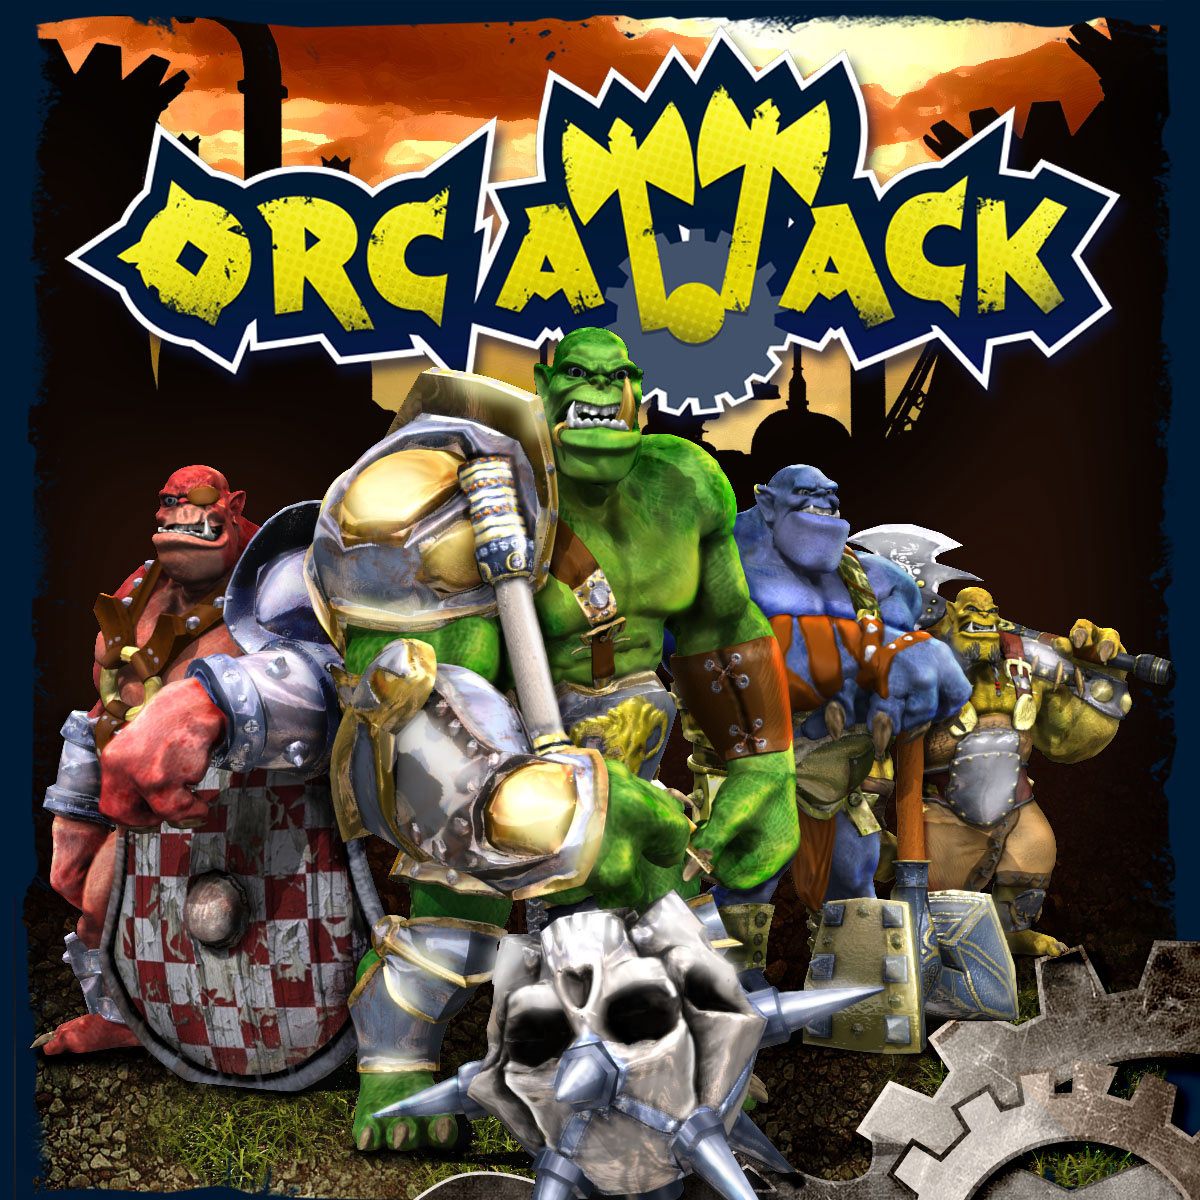 orc-attack-box-art-image.jpg